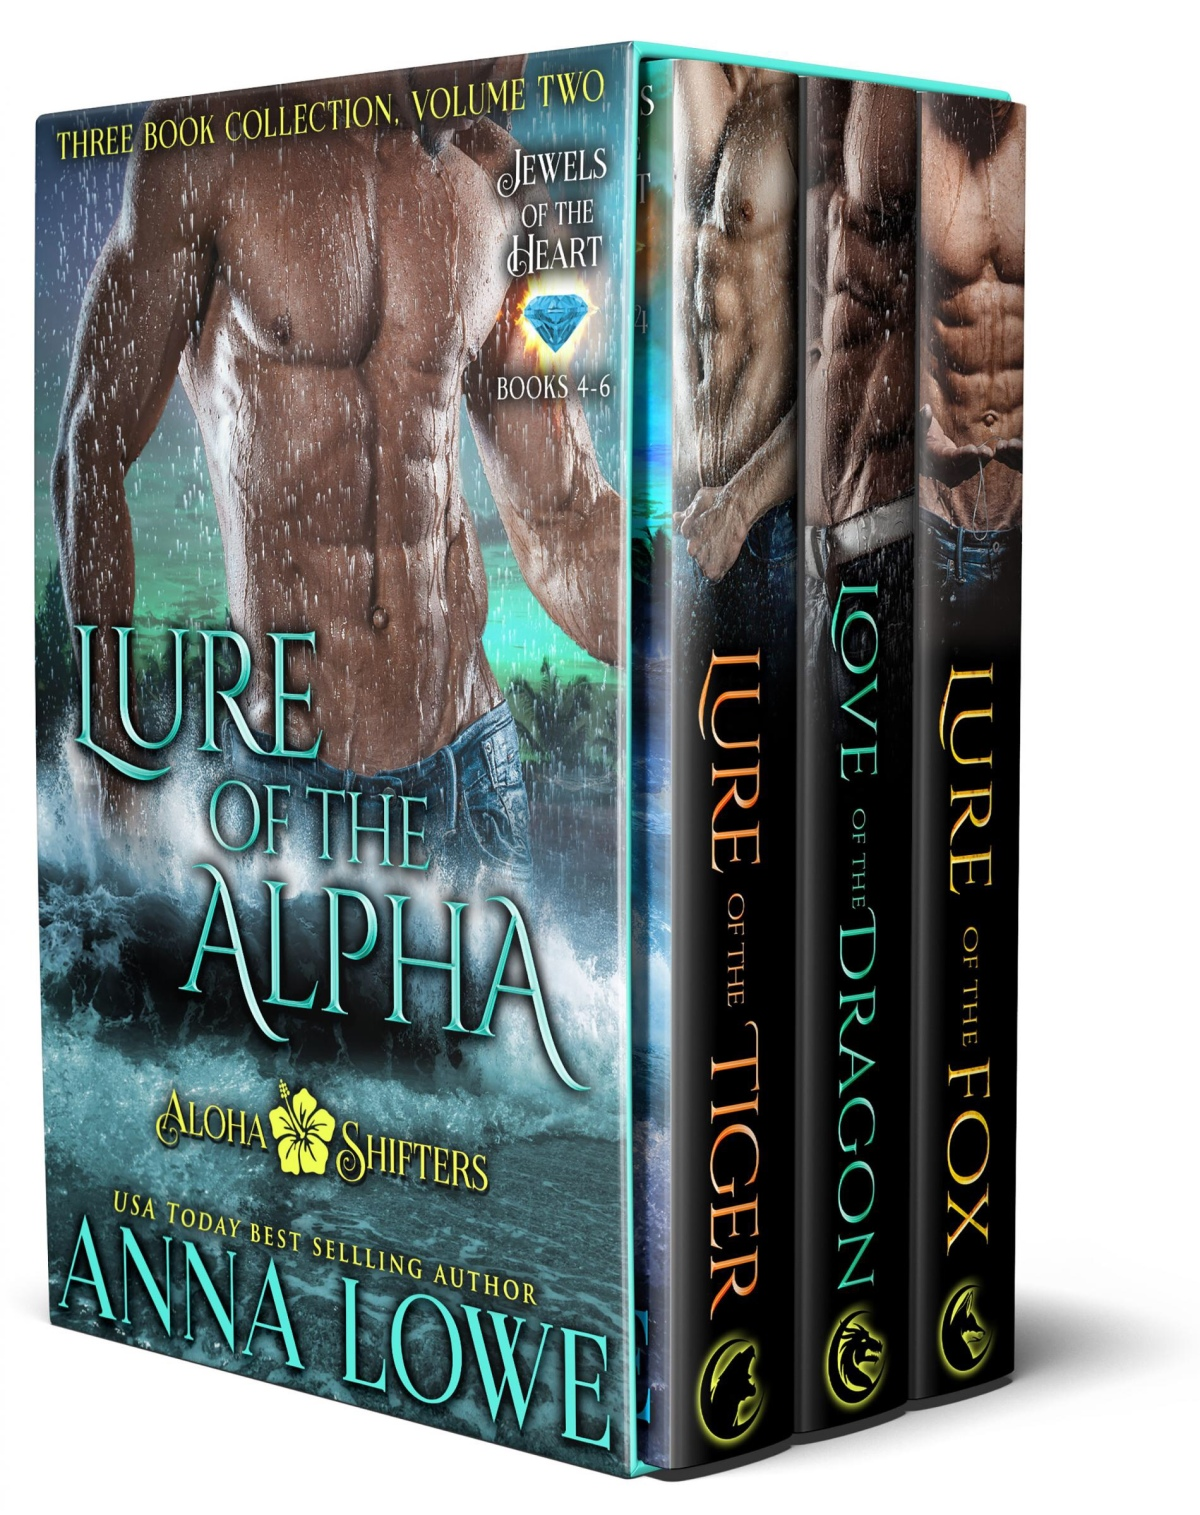 Lure of the Alpha: Three Book Collection – Volume 2